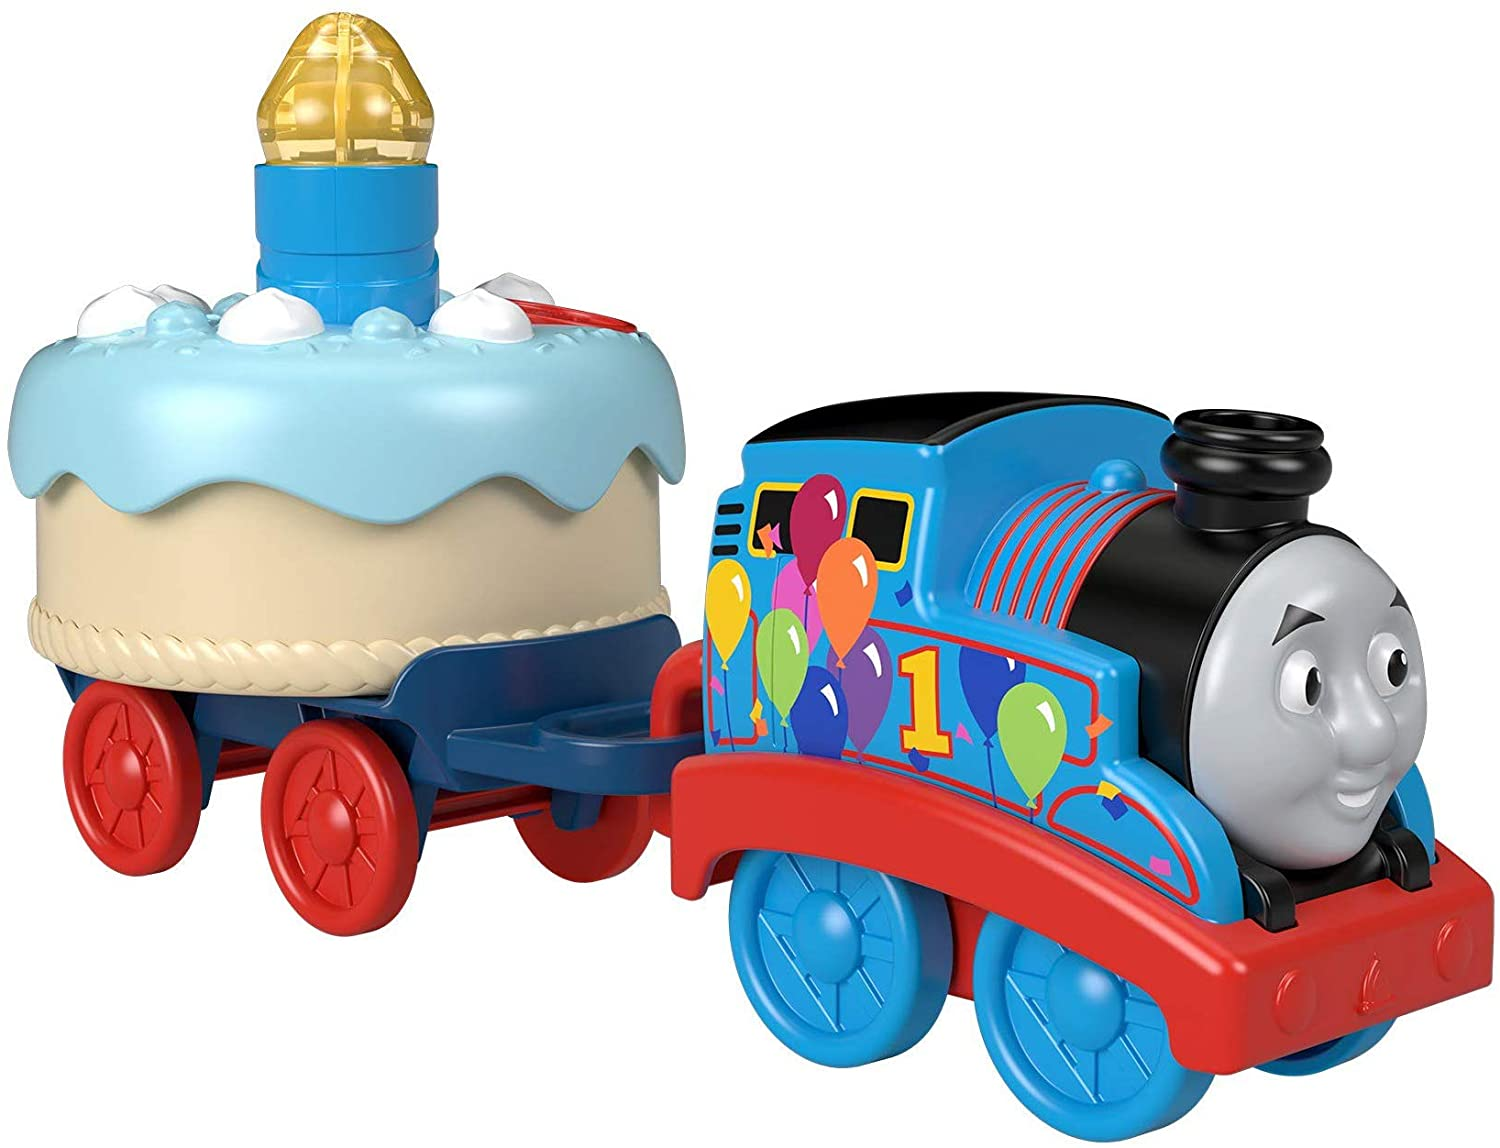 Thomas & Friends GHN67 Birthday Wish Thomas